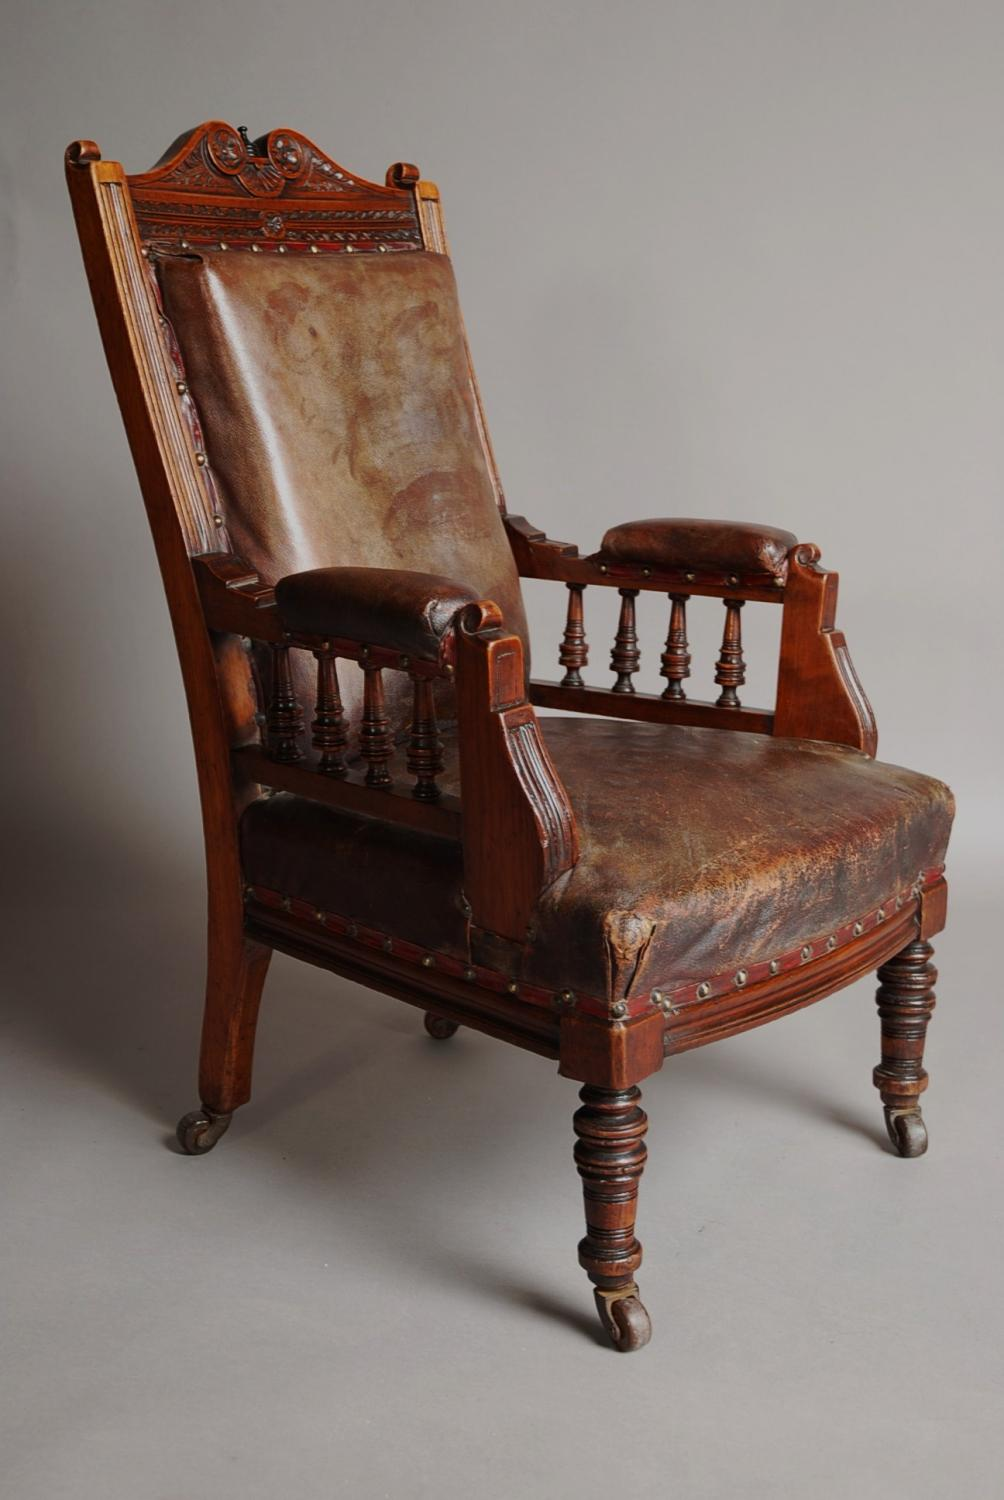 Mahogany and leather large childs armchair in Chairs